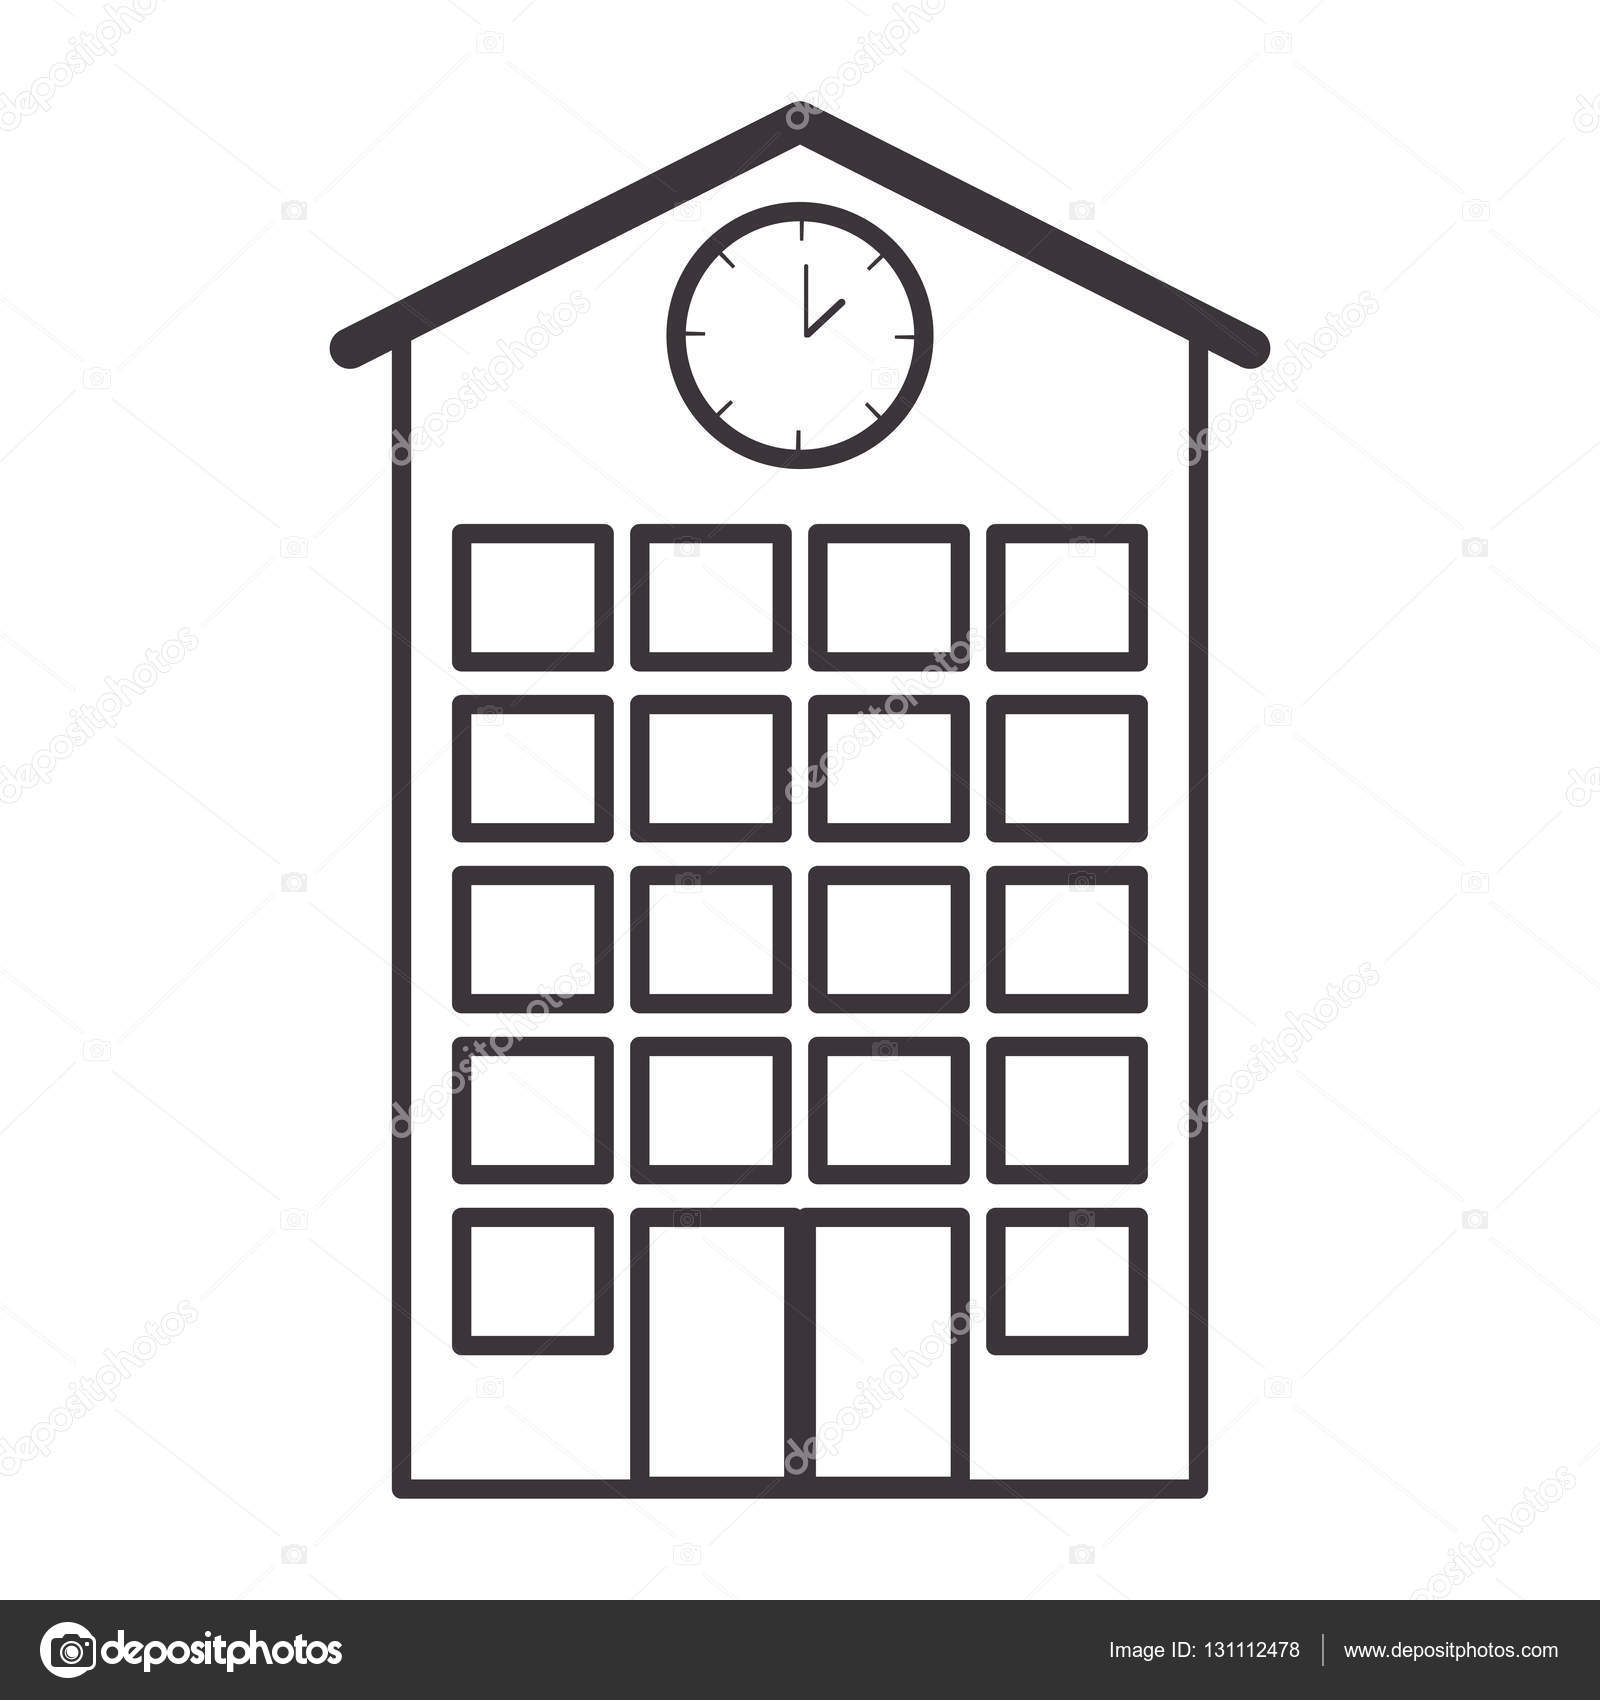 Structure clipart high With — Stock — clock